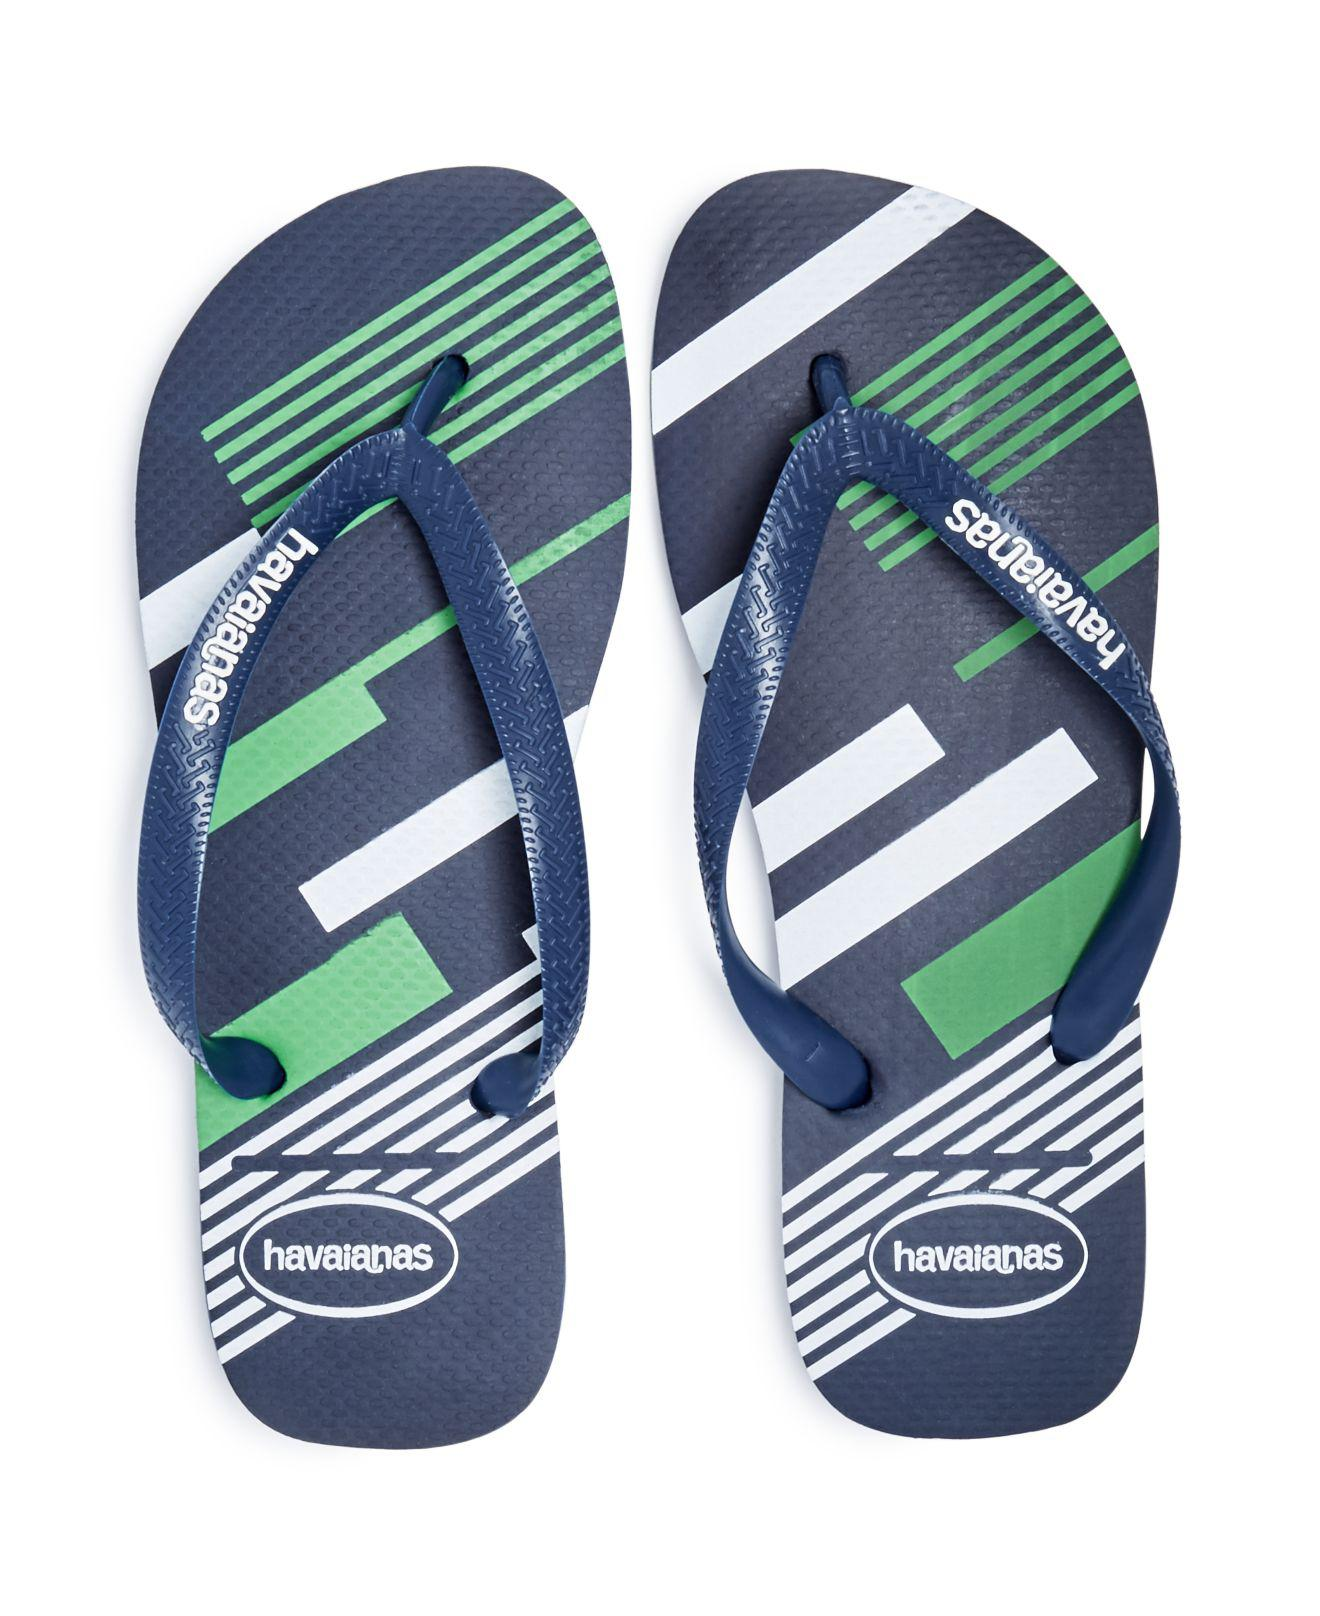 1d4d27e18e244 Lyst - Havaianas Men s Top Trend Flip-flops in Blue for Men